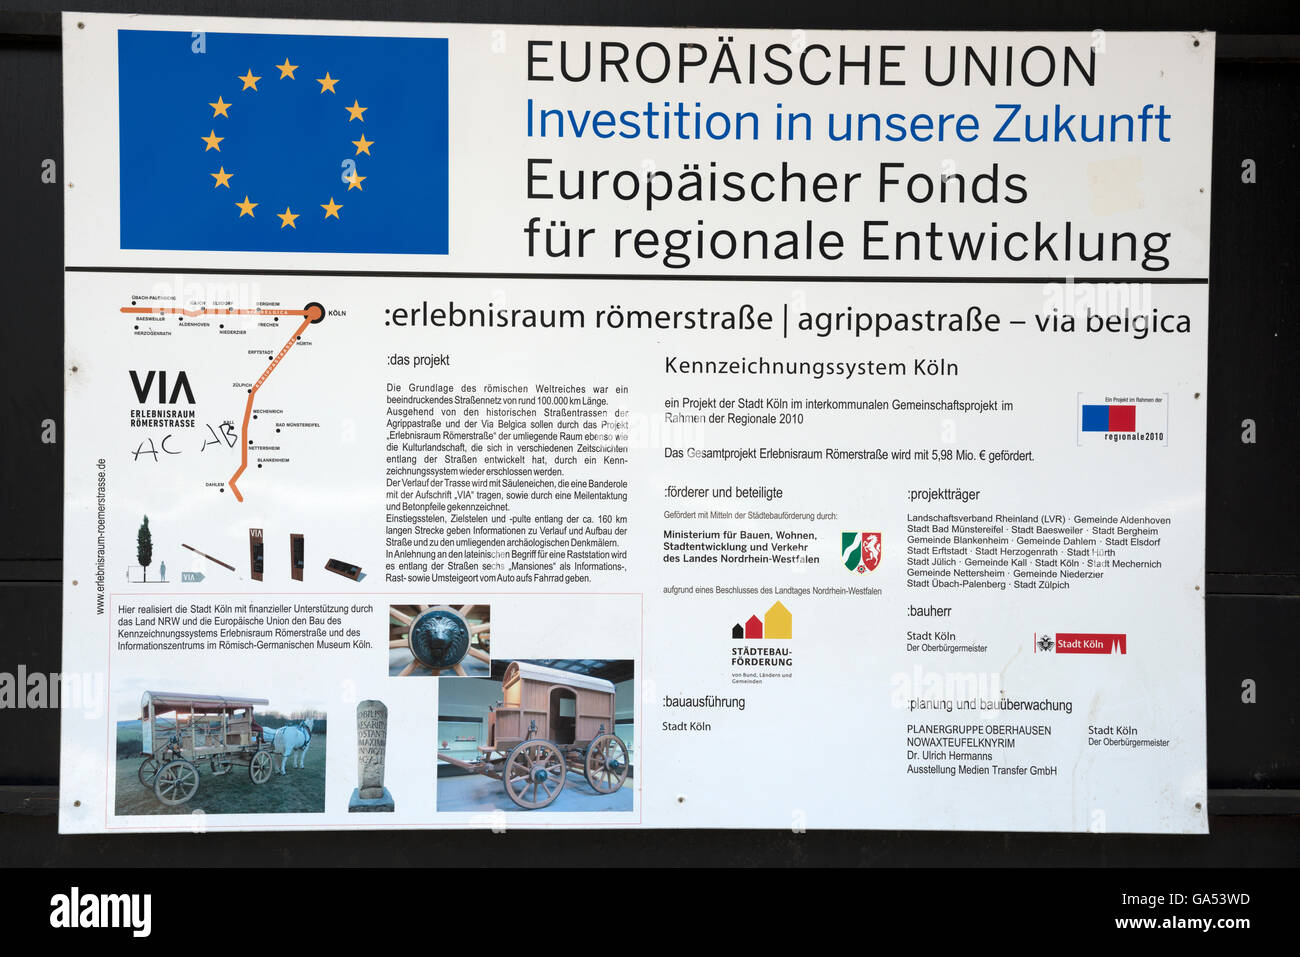 European Union funding sign (Germany) - Stock Image